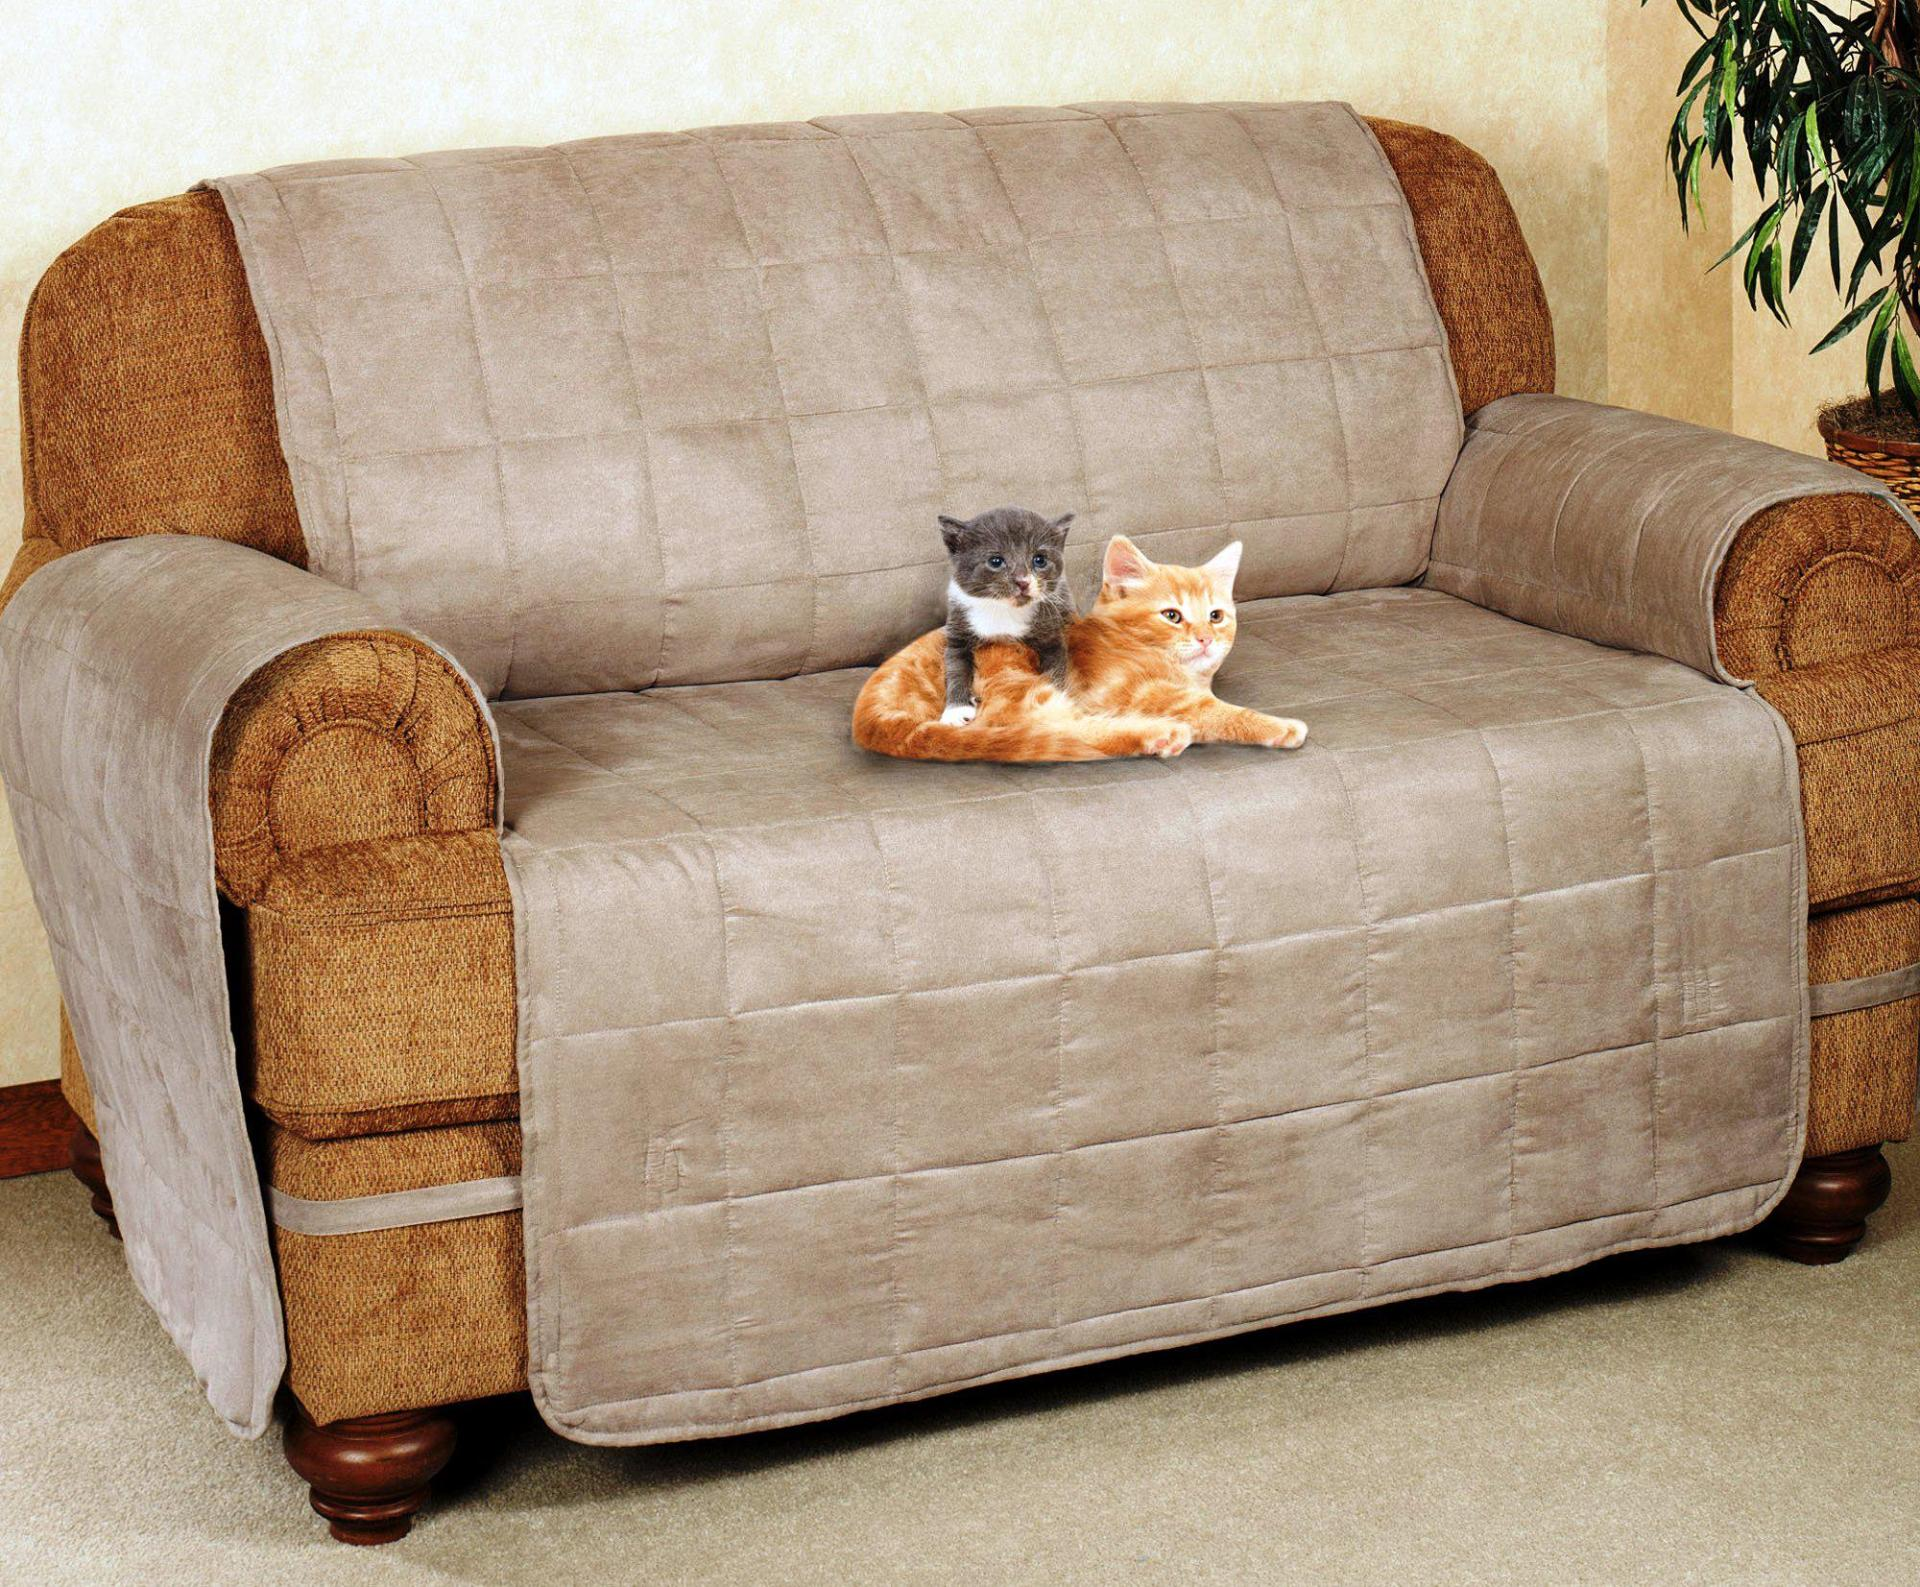 Image of: Couch Protector From Cats